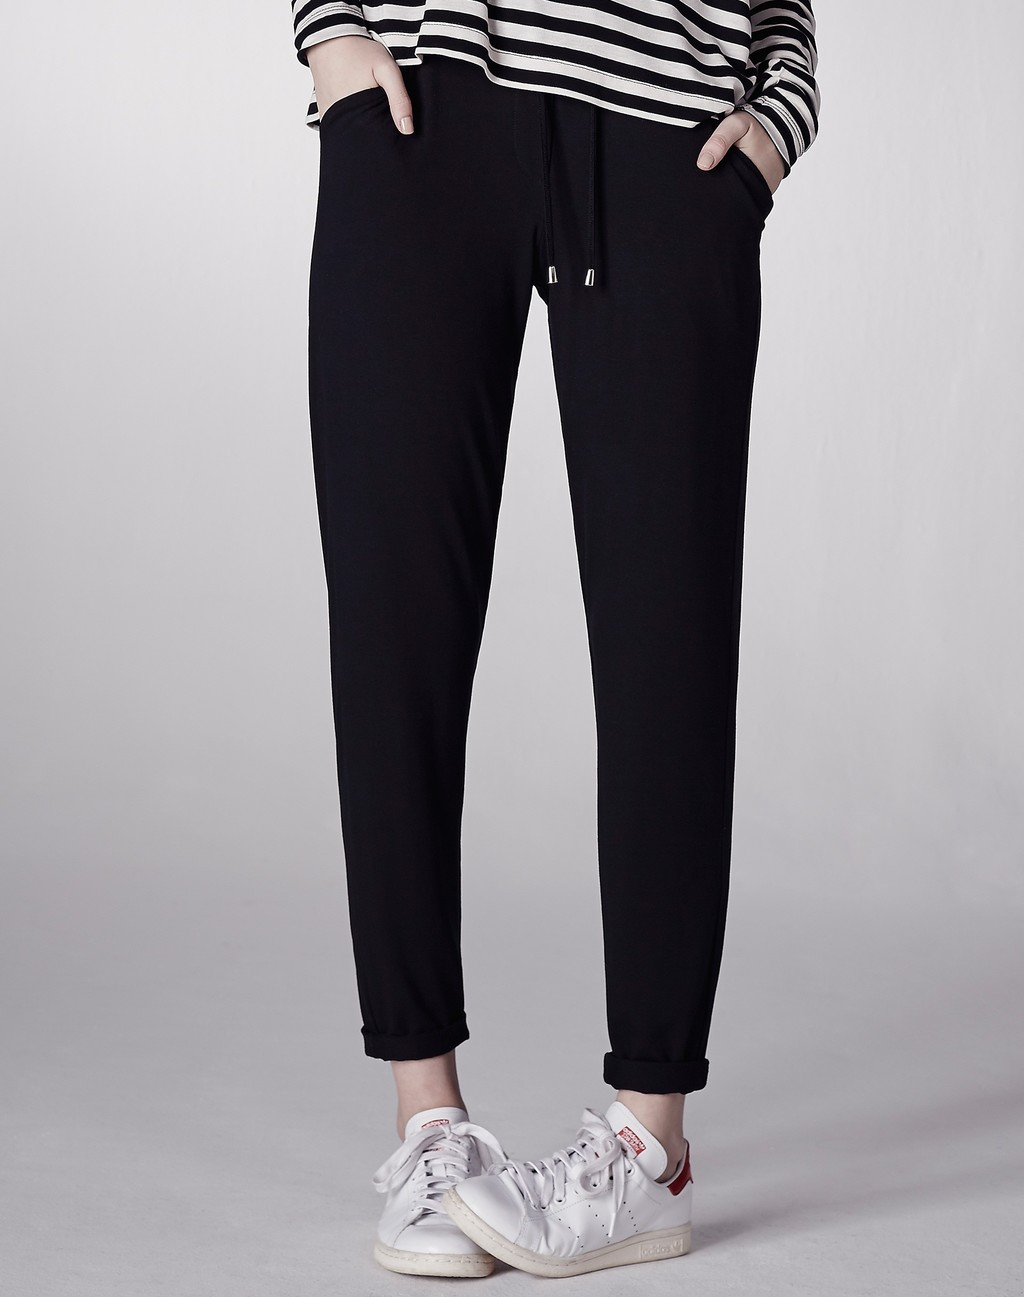 Slouchy Jogger Black - length: standard; pattern: plain; style: tracksuit pants; waist detail: belted waist/tie at waist/drawstring; waist: mid/regular rise; predominant colour: black; occasions: casual; fibres: viscose/rayon - stretch; fit: tapered; pattern type: fabric; texture group: jersey - stretchy/drapey; season: s/s 2016; wardrobe: basic